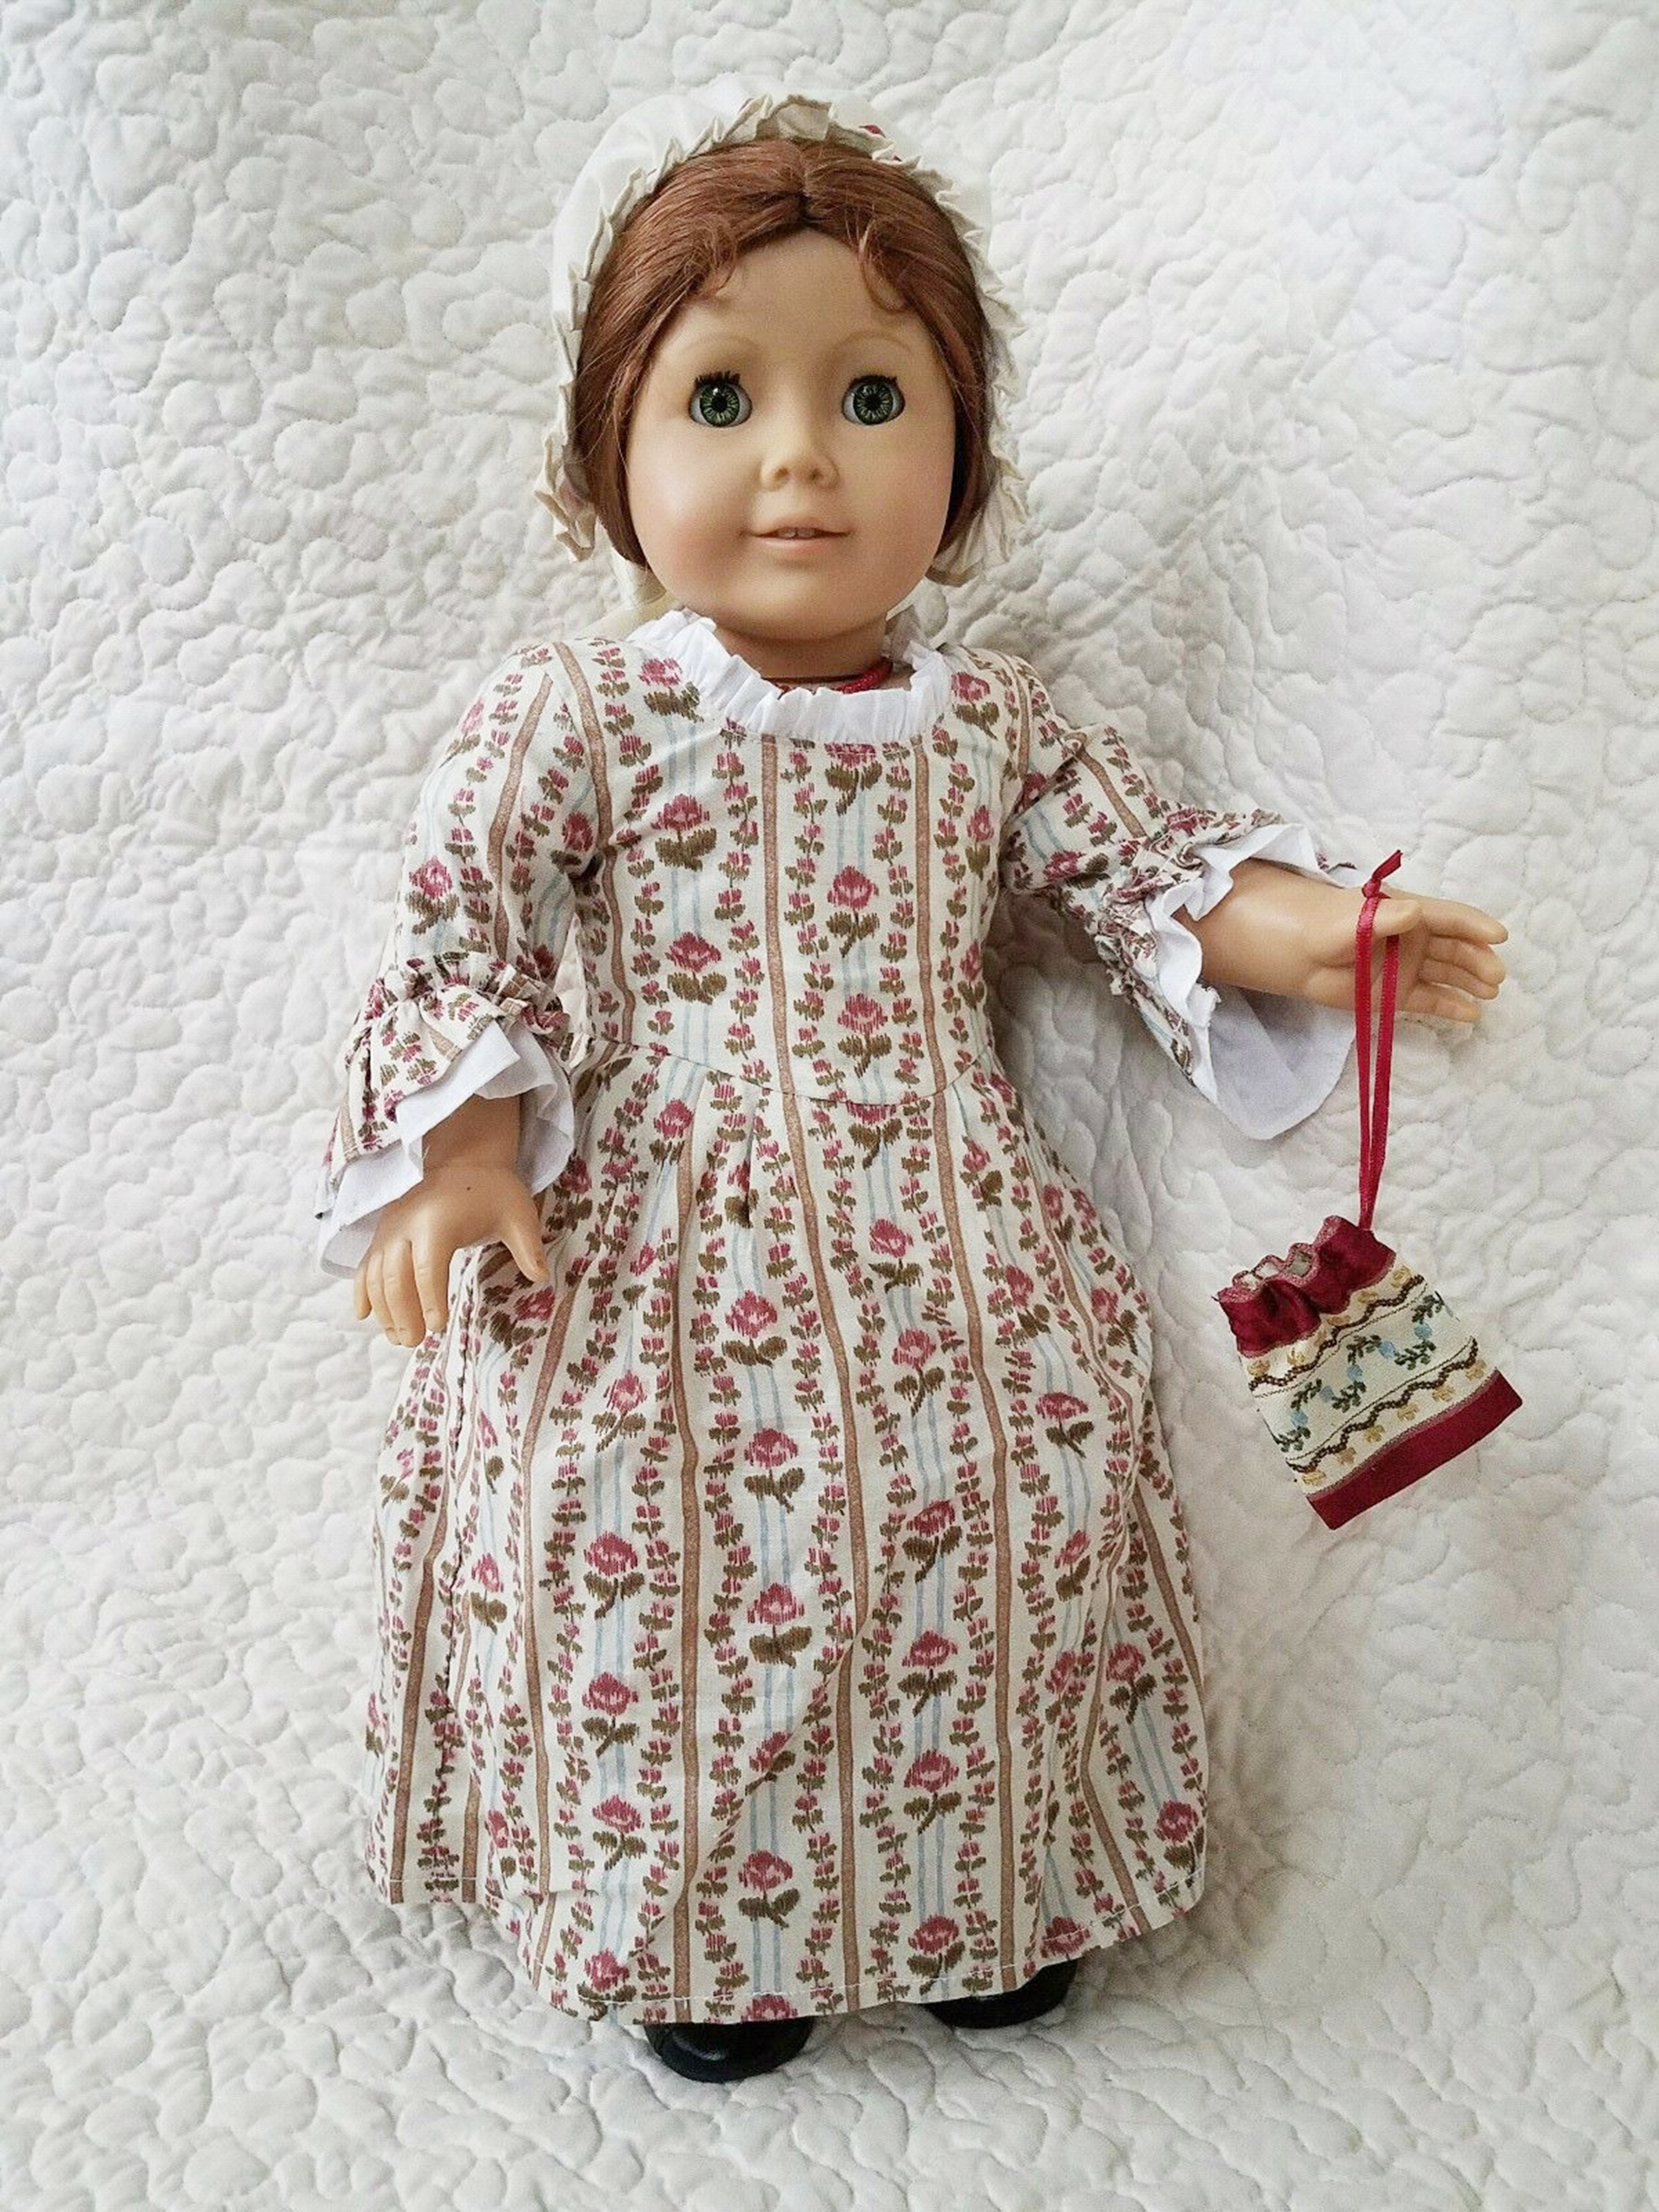 American Girl Dolls Could Be Valuable On Ebay